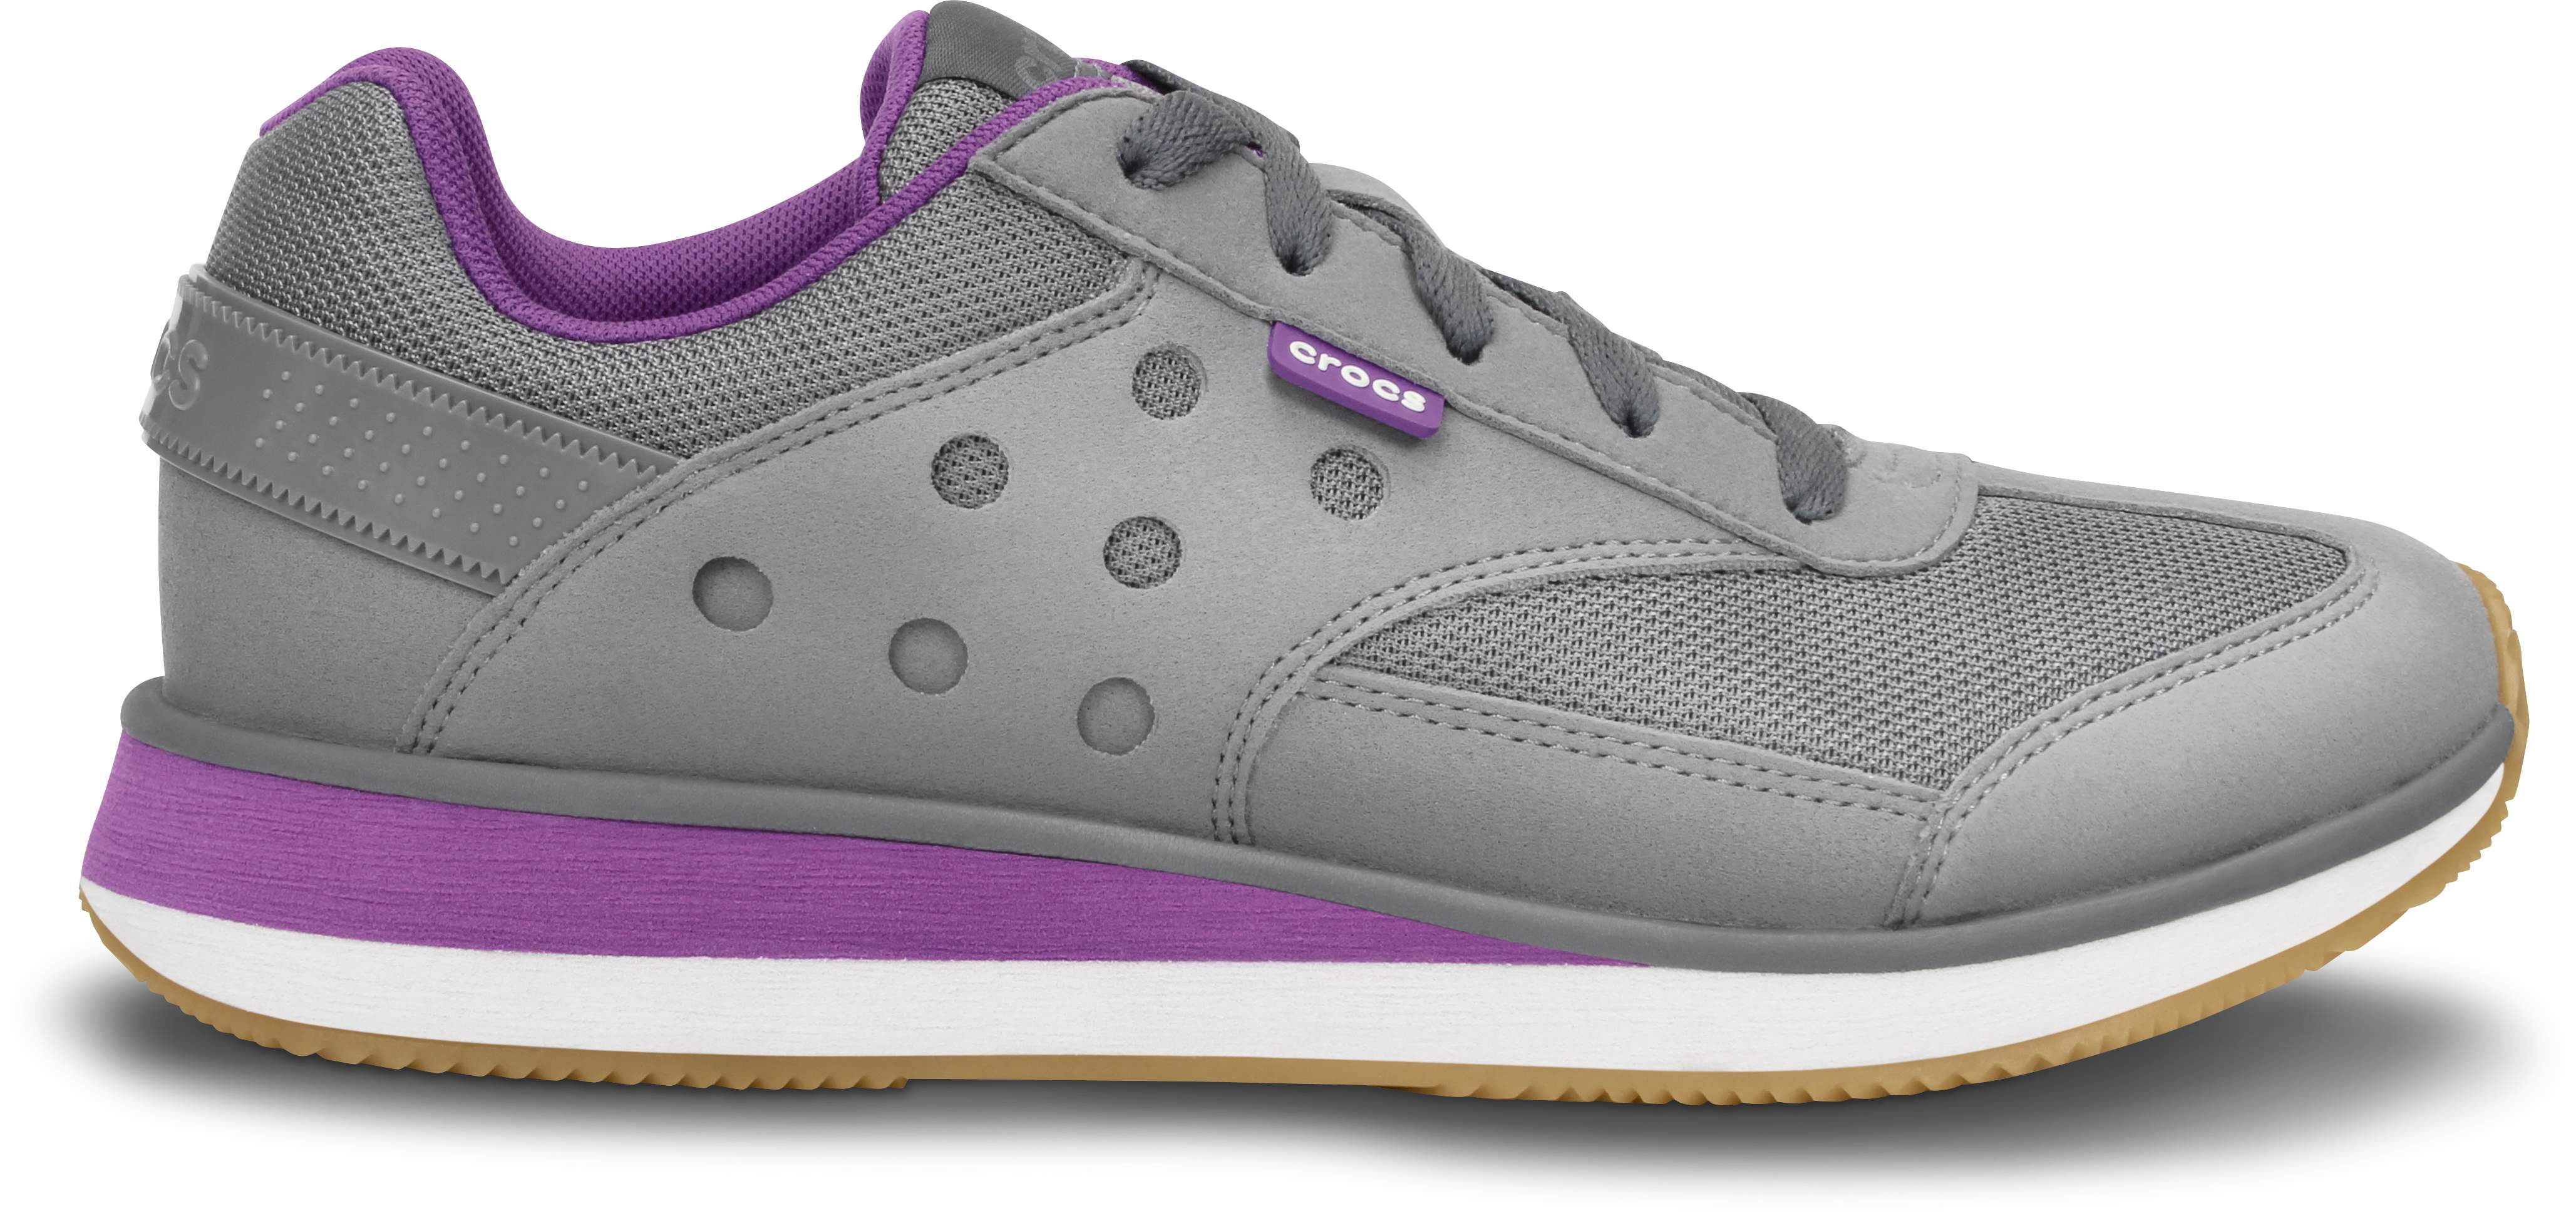 Women's<br /><br /><br /><br /><br /> Crocs Retro Sneaker